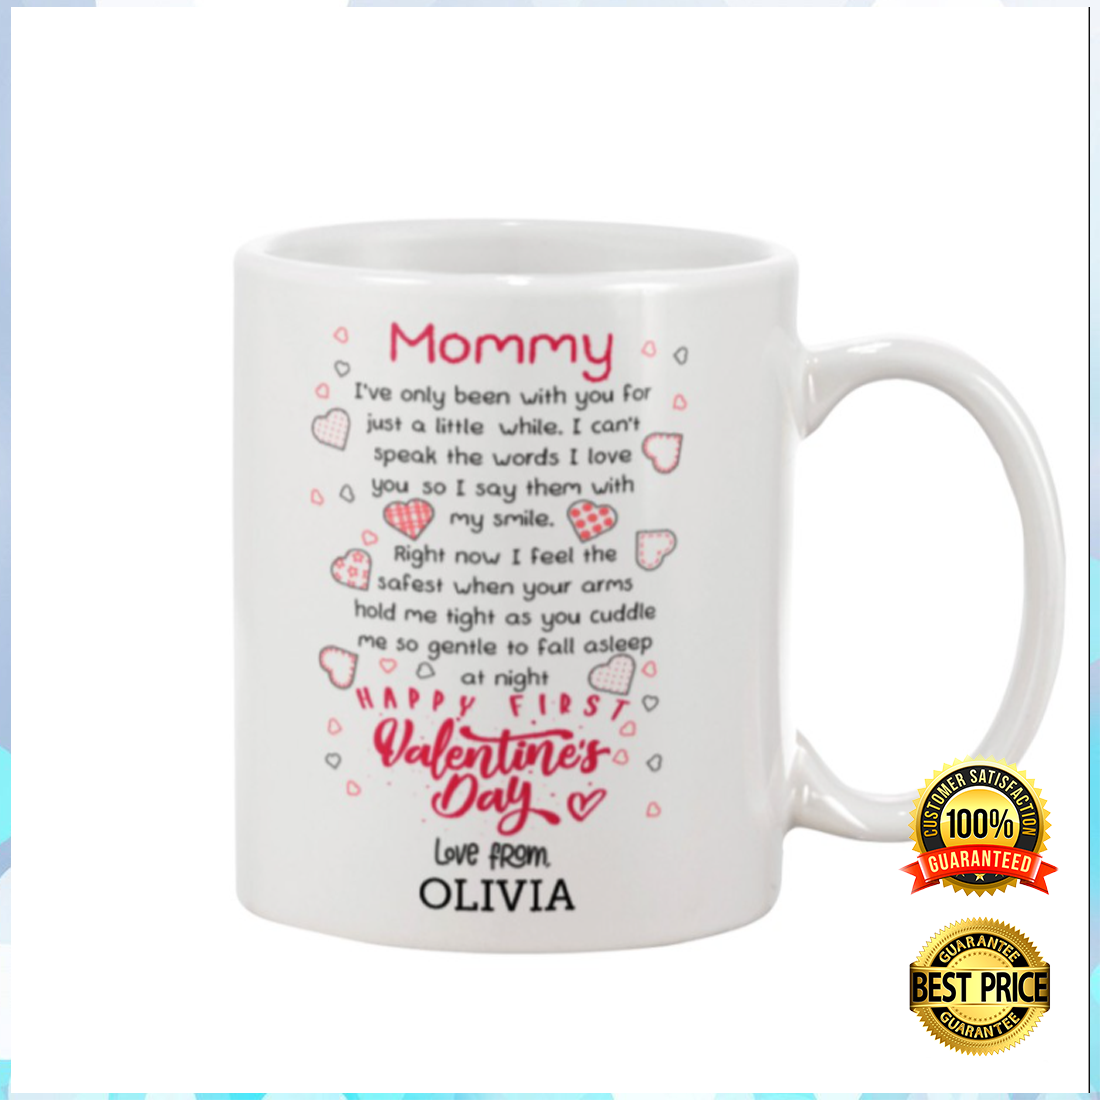 PERSONALIZED MOMMY HAPPY FIRST VALENTINE'S DAY MUG 6